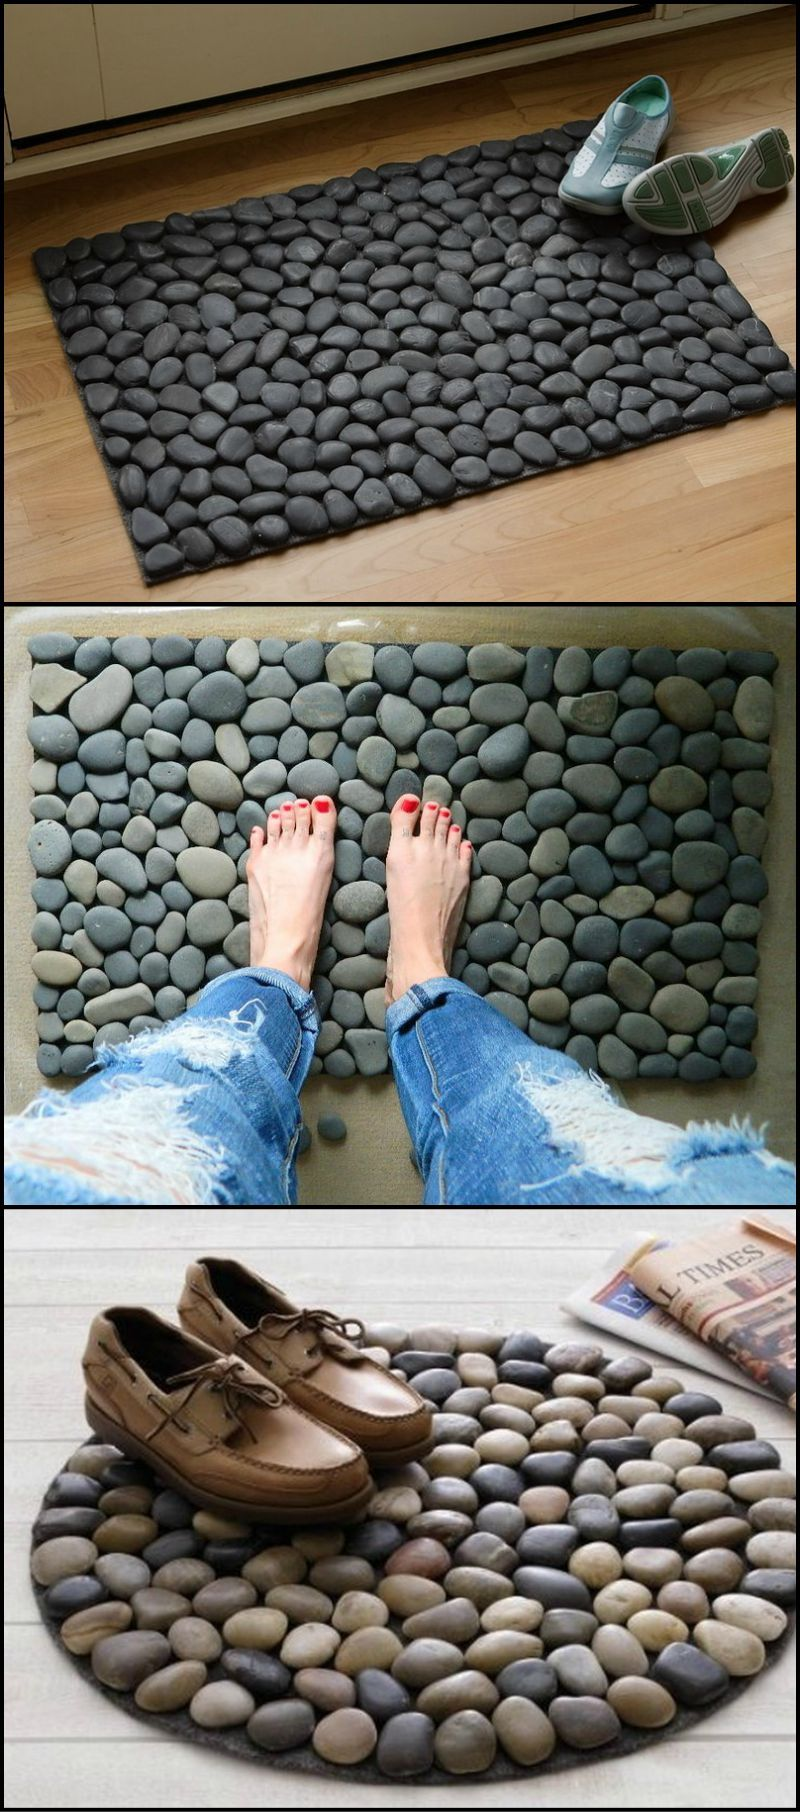 What's great about this doormat is that water evaporates fast (depending on the materials that you use), preventing odor from building up. http://theownerbuildernetwork.co/aoq1 It's also easier to clean as opposed to fabric door mats — simply wash it using a water hose and the dirt would be gone!